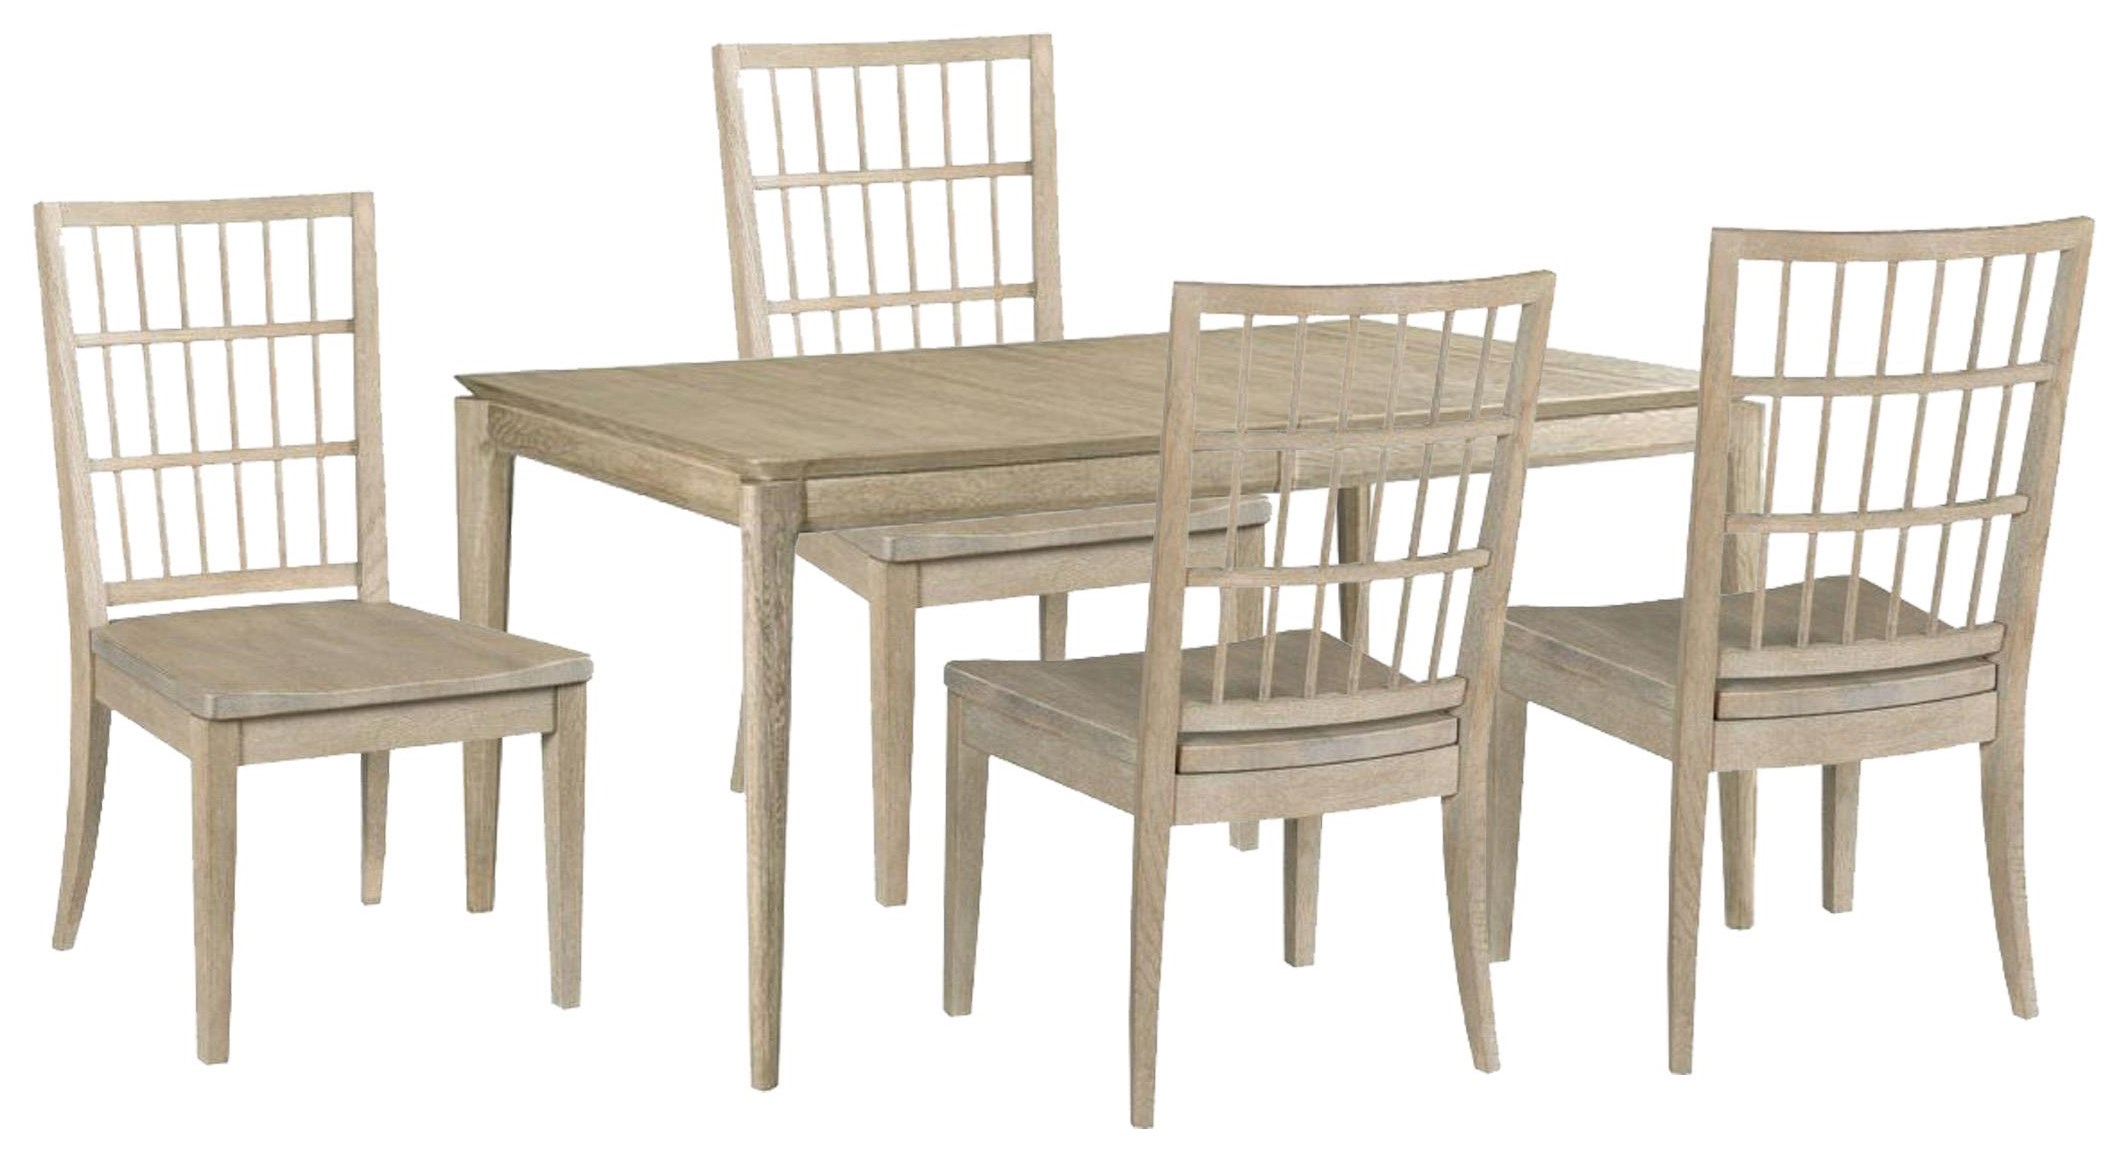 Symmetry Dining Table and Side Chairs by Kincaid Furniture at Johnny Janosik